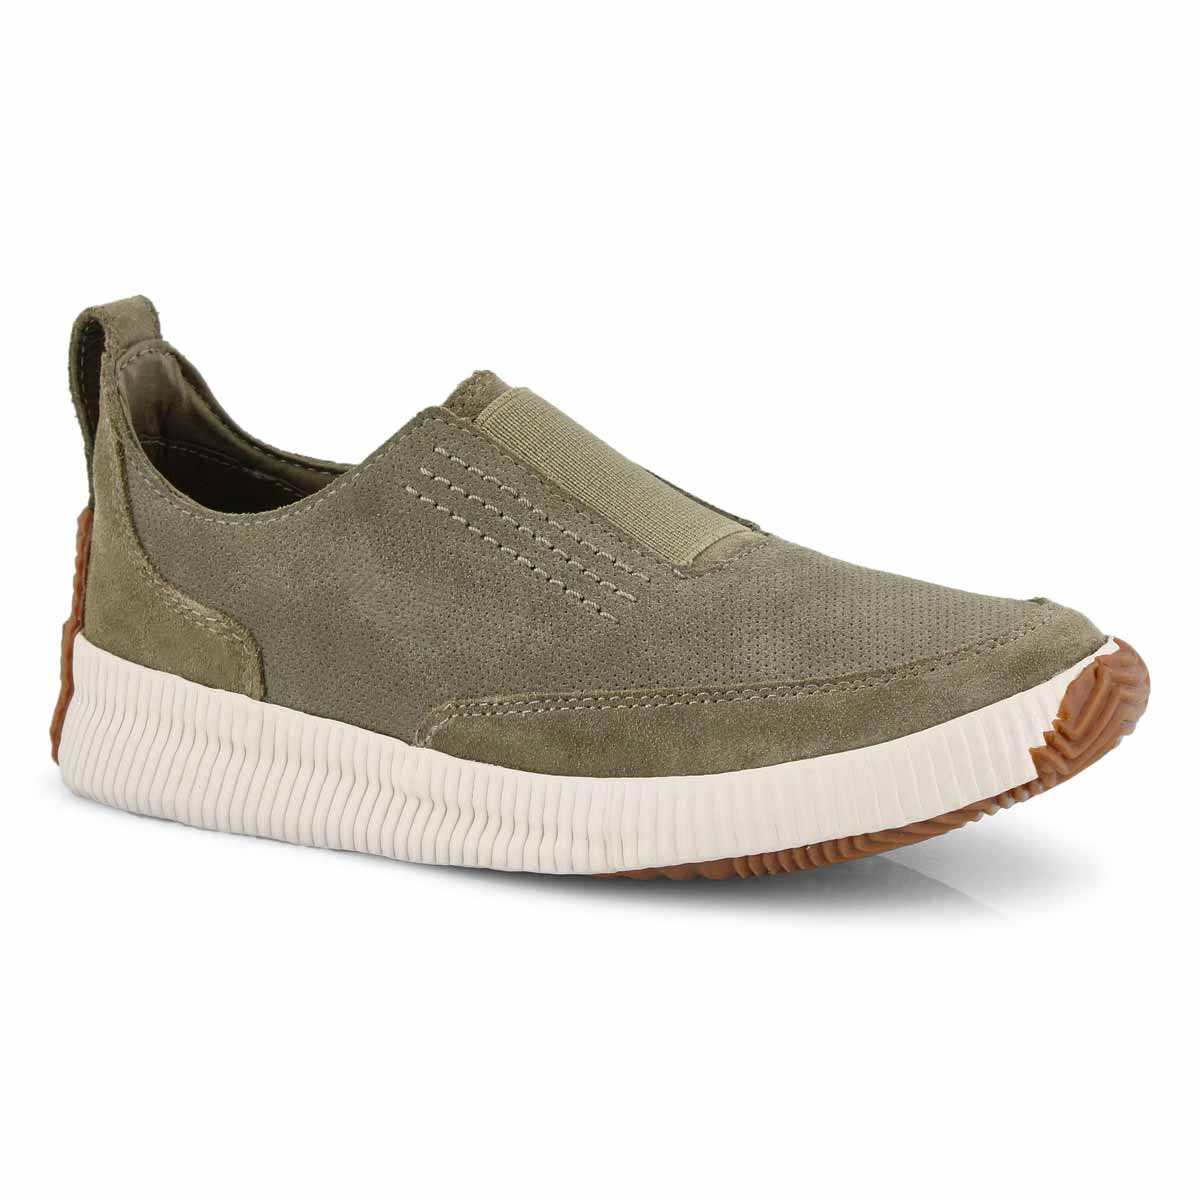 Lds Out N About Plus Slip sage sneaker